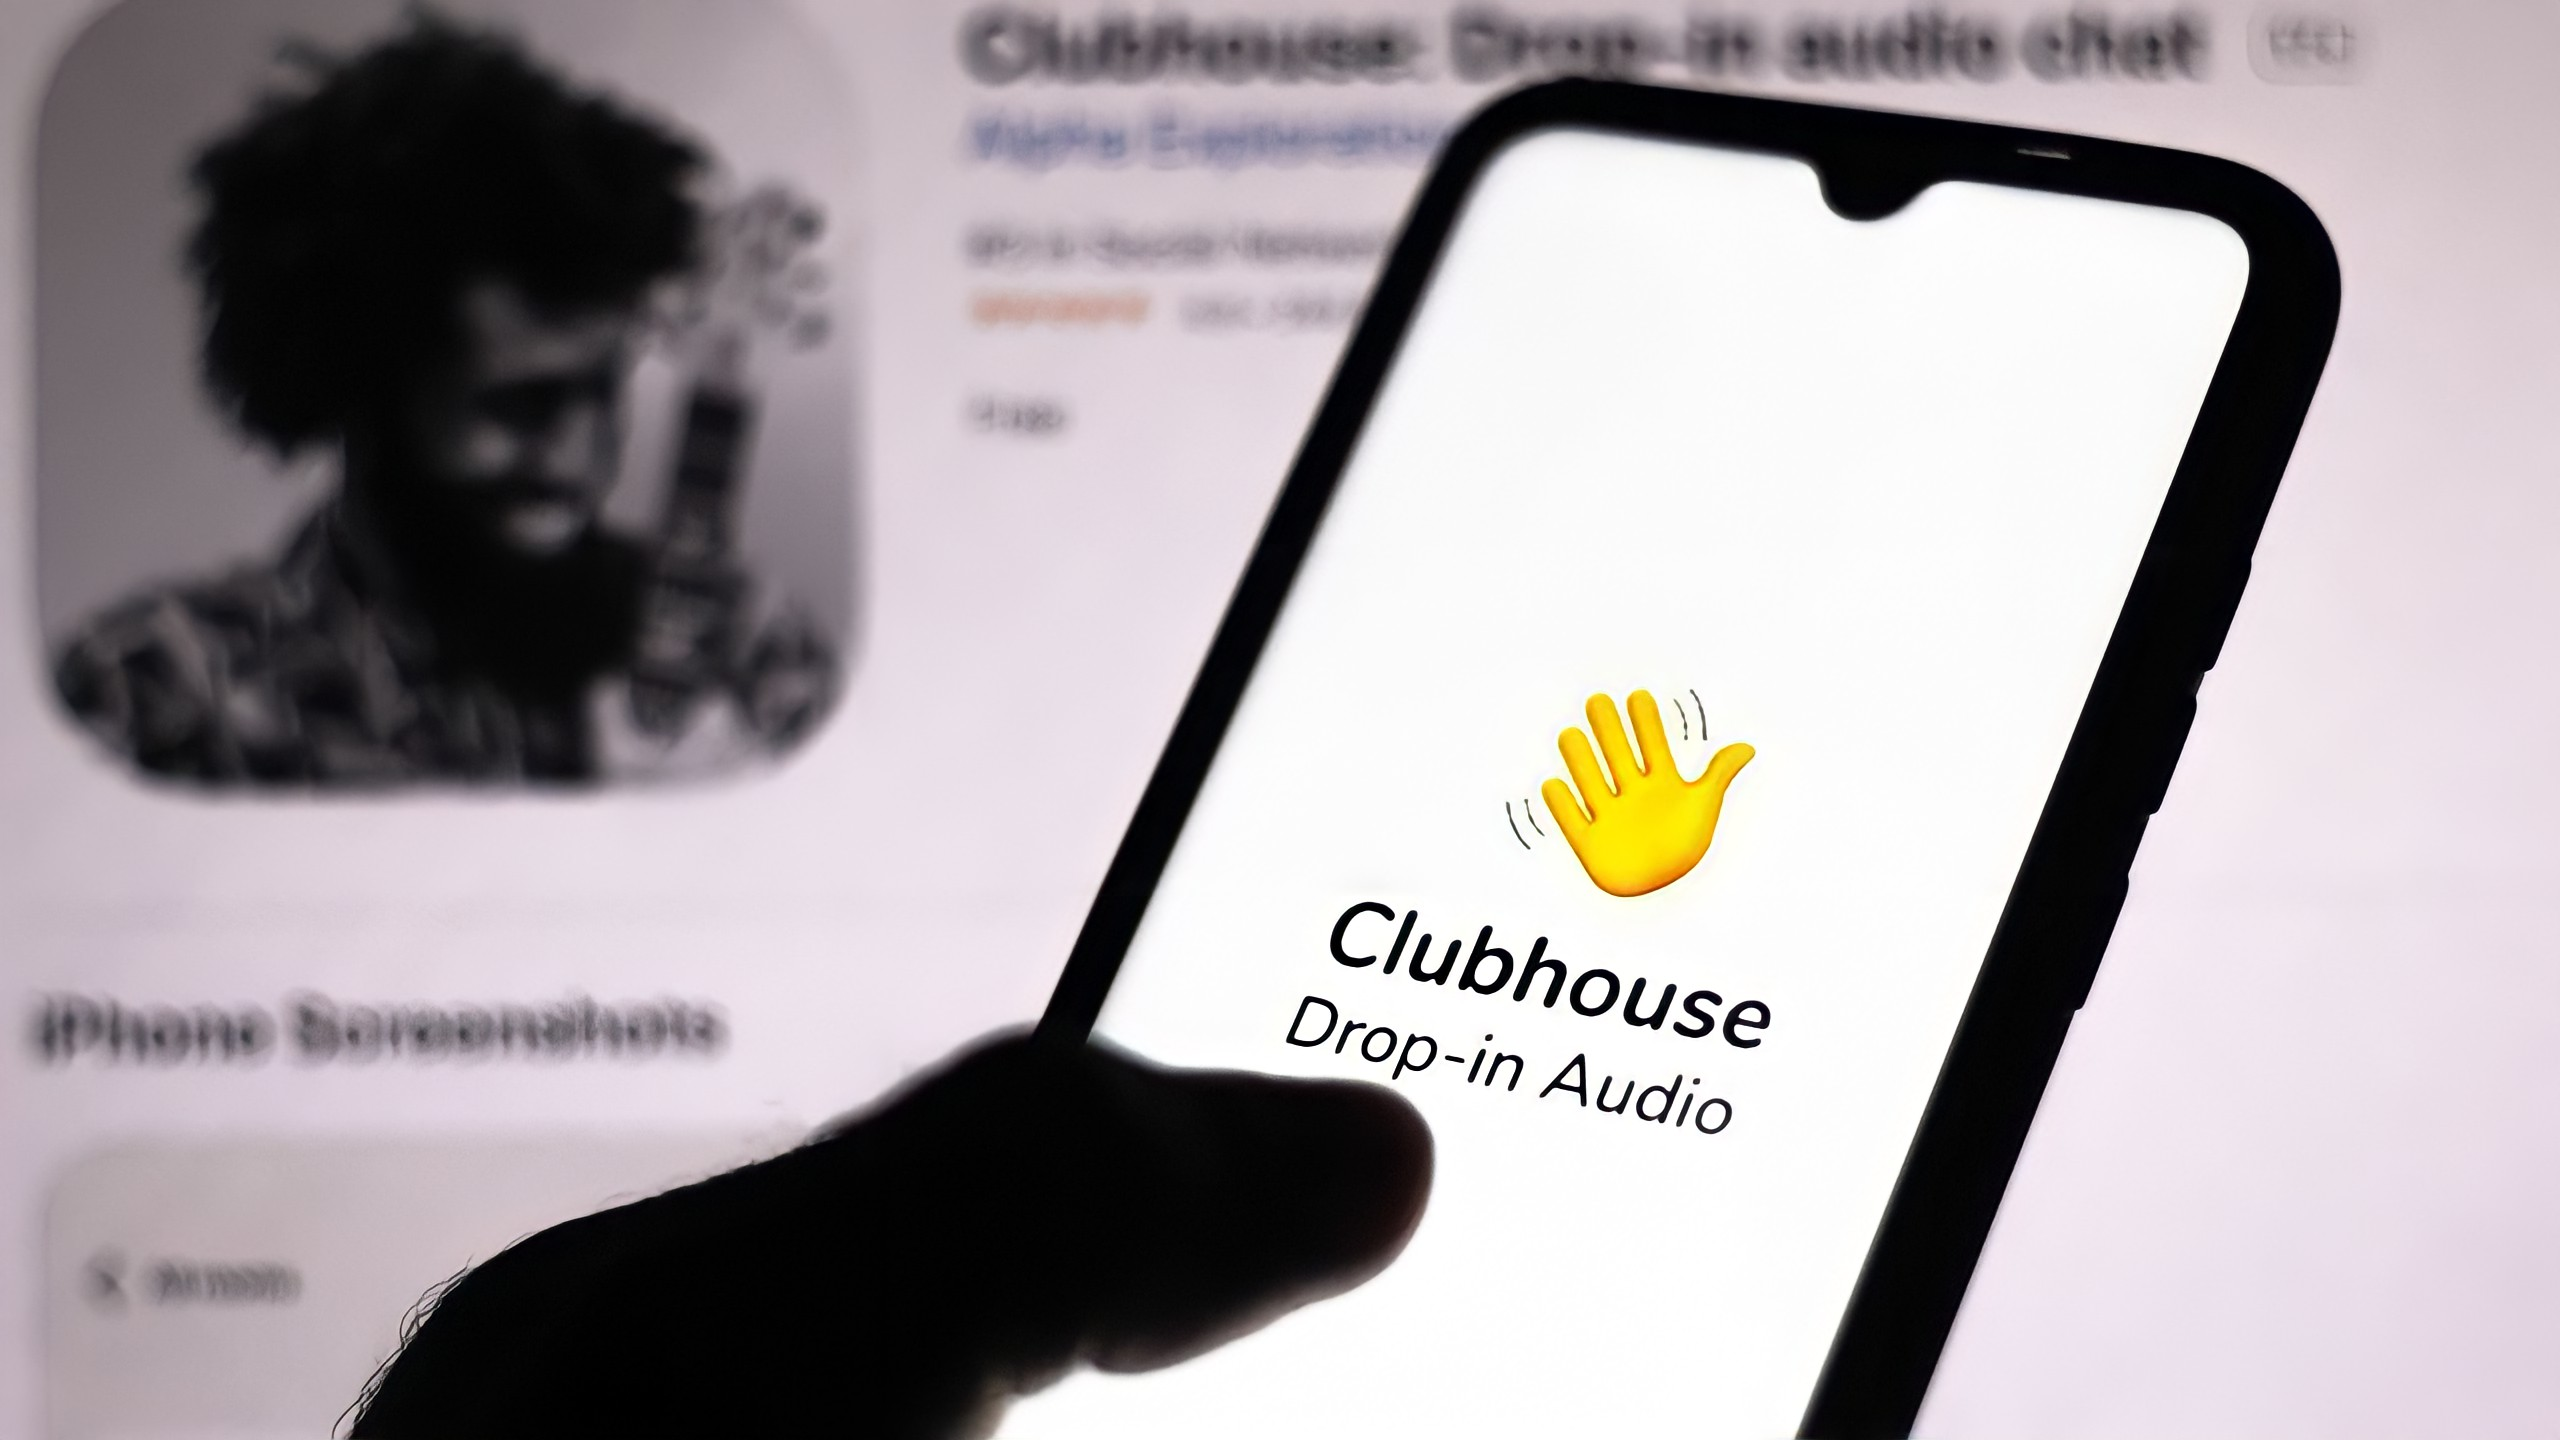 Clubhouse: a new social network